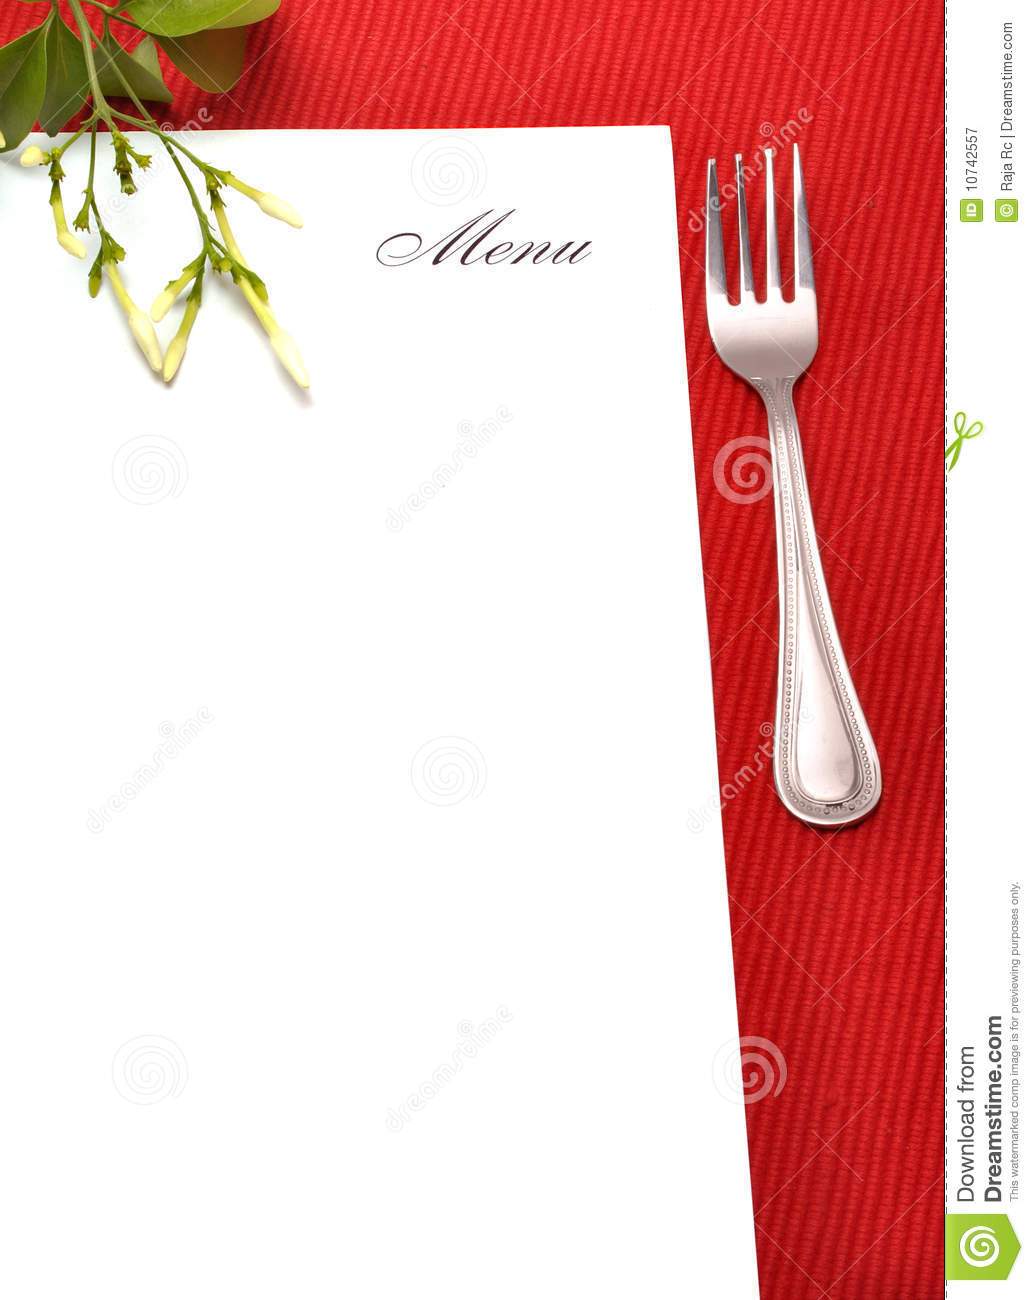 Menu card stock image Image of recipe flower lunch  : menu card 10742557 from www.dreamstime.com size 1034 x 1300 jpeg 112kB